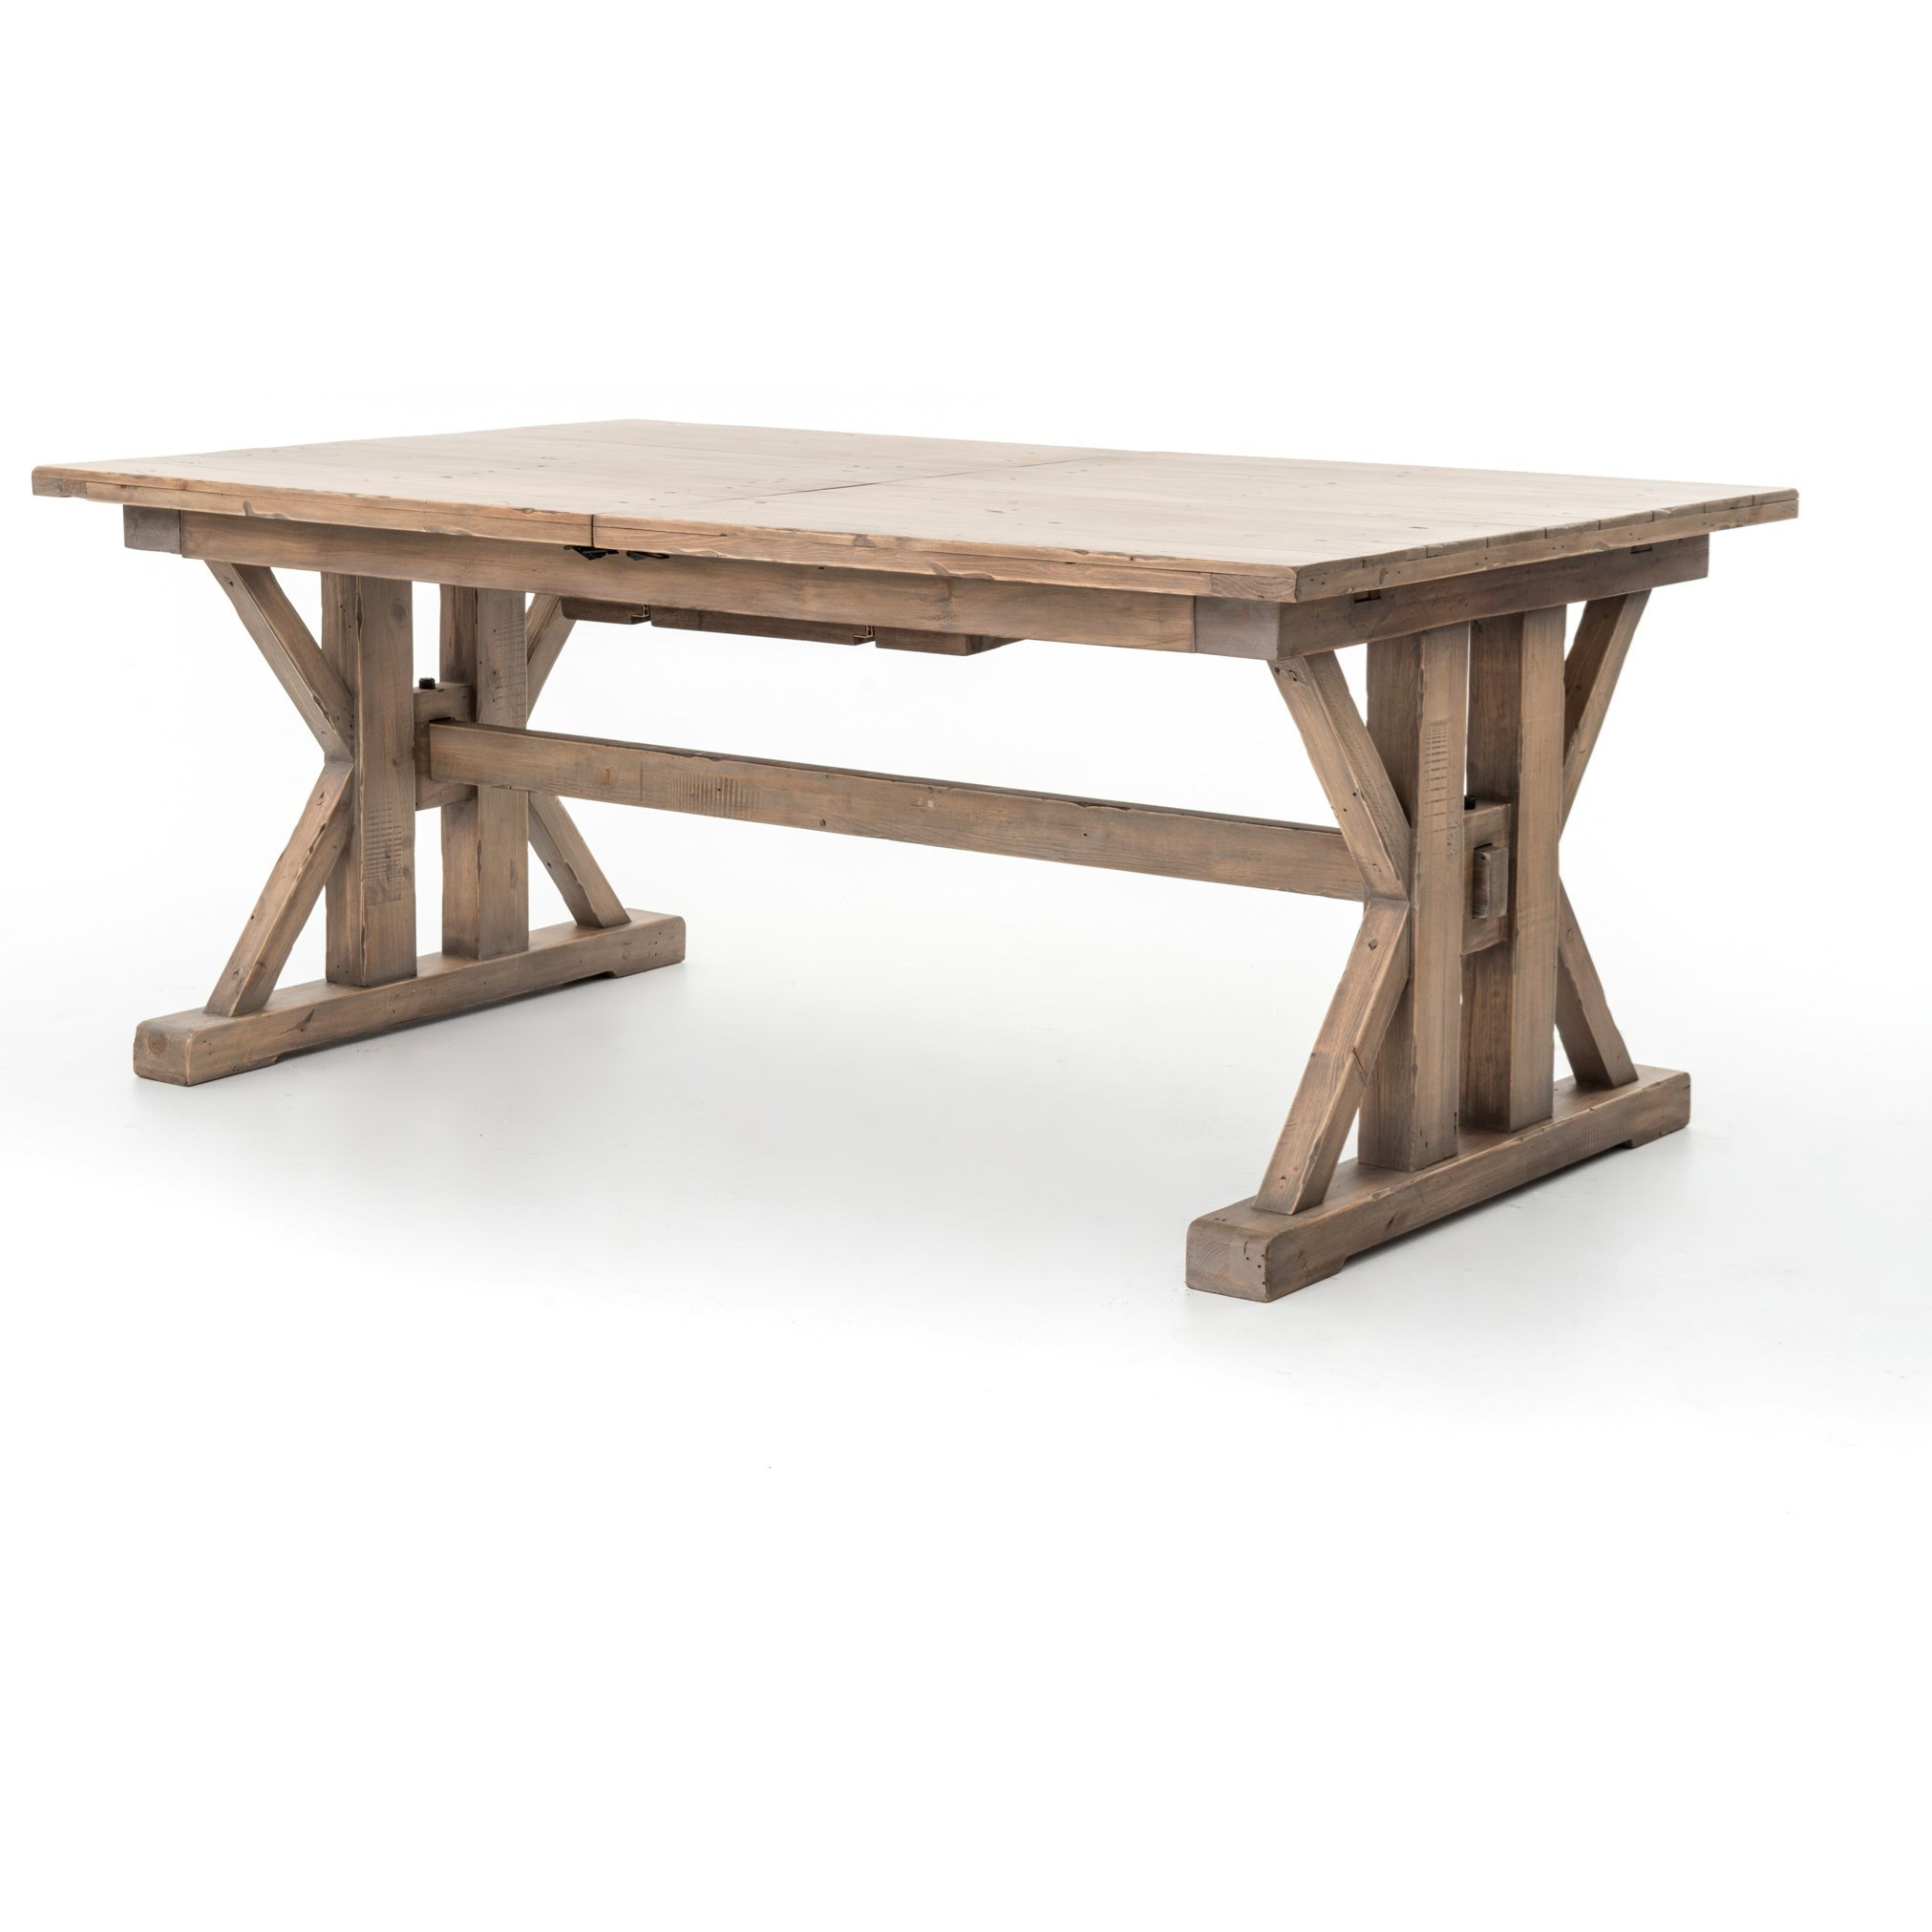 Tuscan Spring Tuscan Spring Dining Table by Four Hands at Alison Craig Home Furnishings